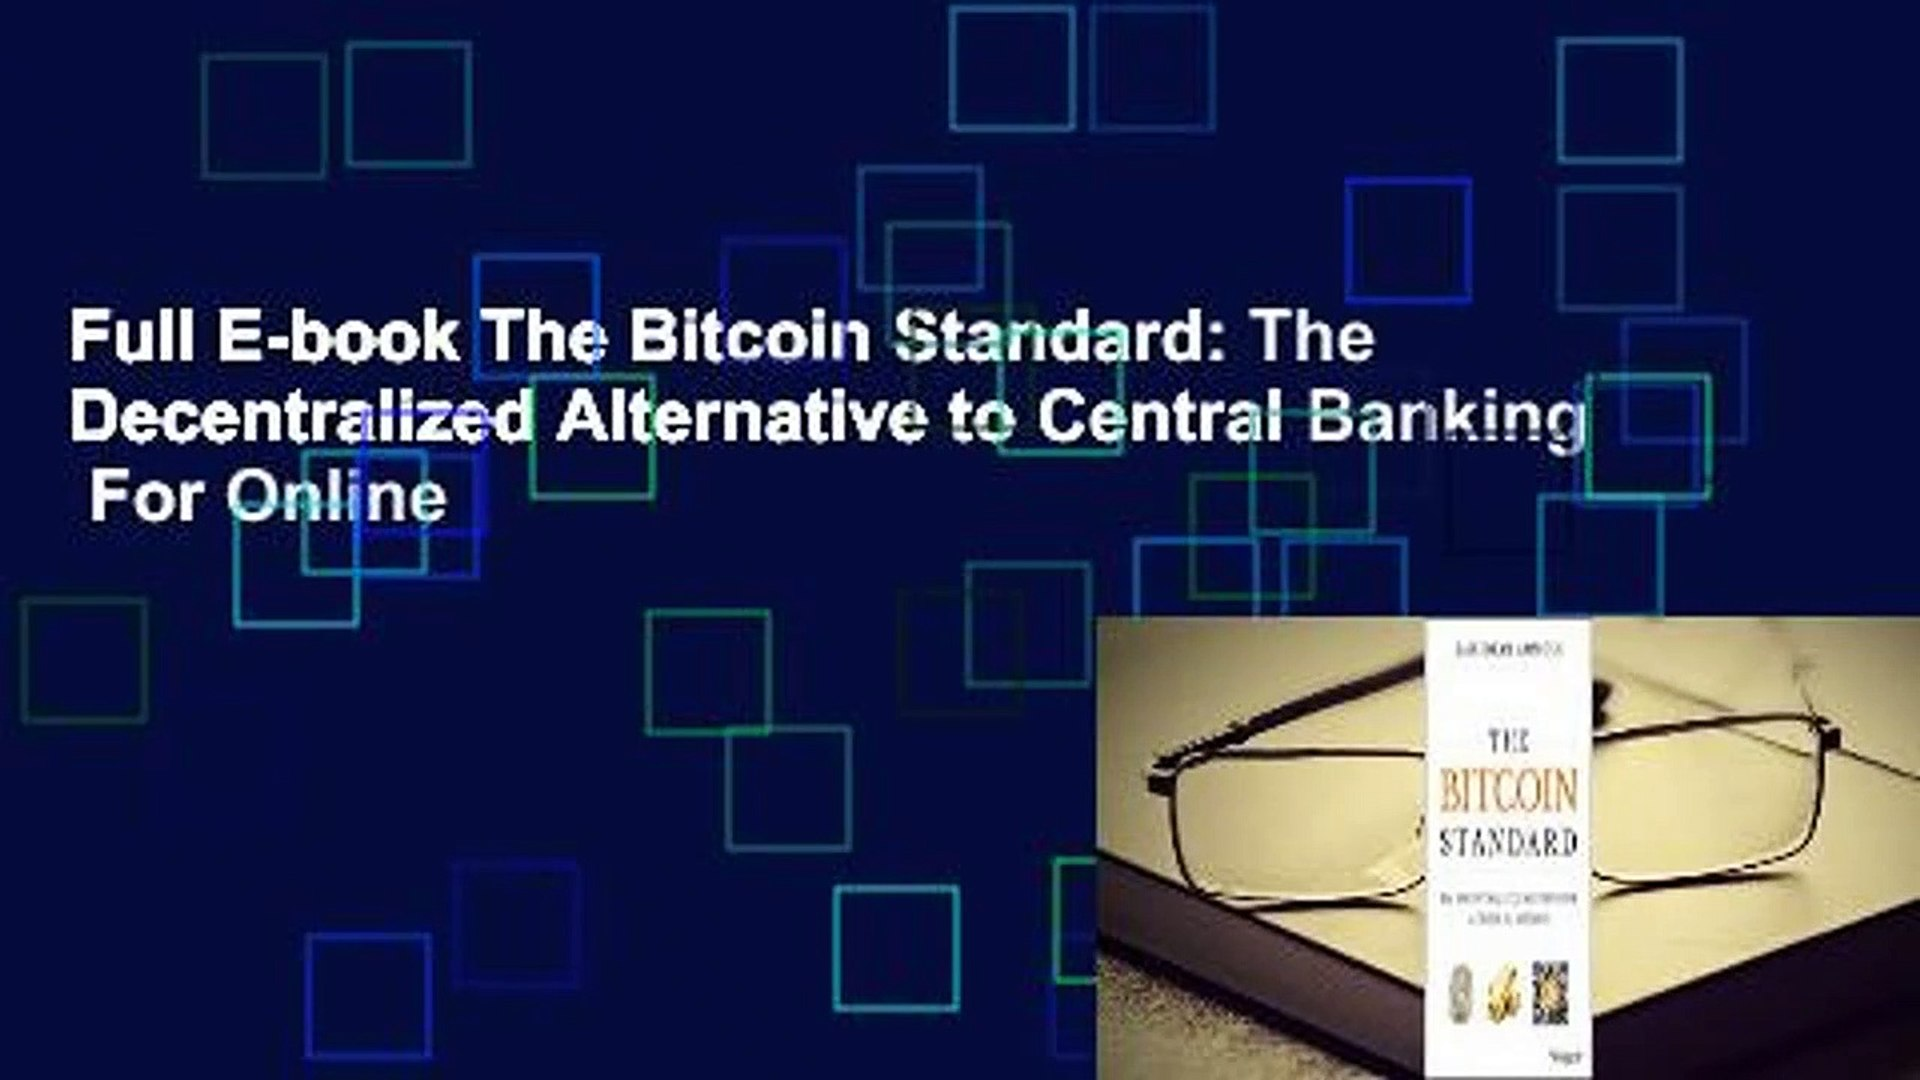 Full E-book The Bitcoin Standard: The Decentralized Alternative to Central Banking  For Online